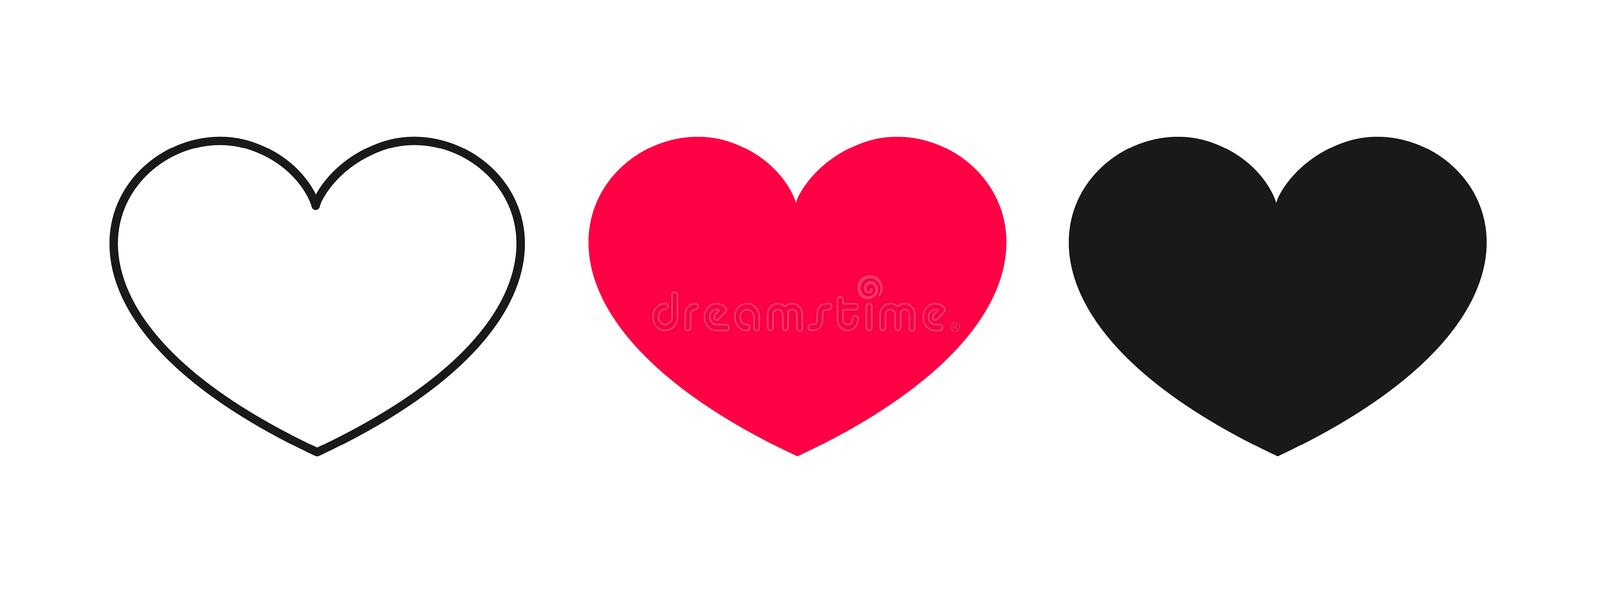 Heart icons, signs isolated on white background. royalty free illustration